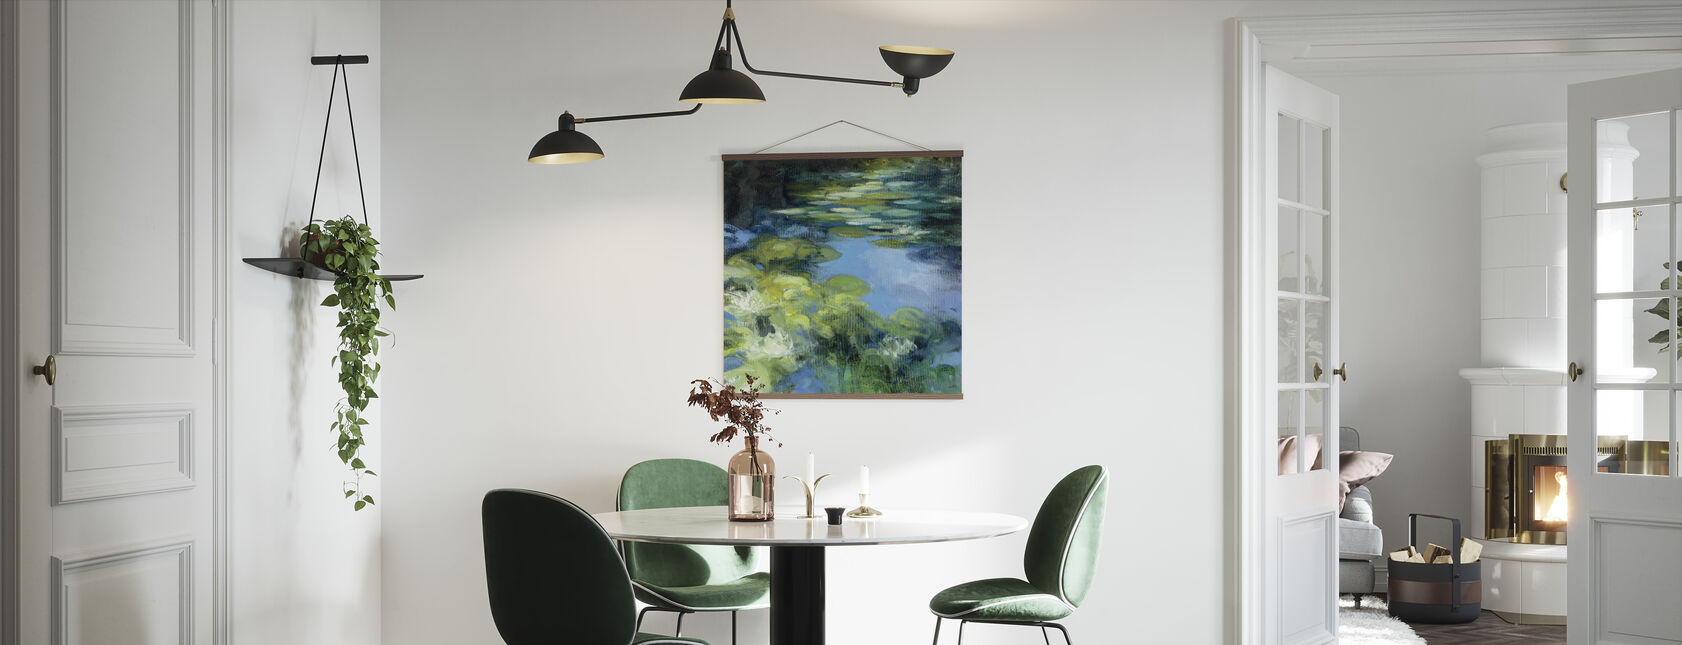 Water Lilies II - Poster - Kitchen